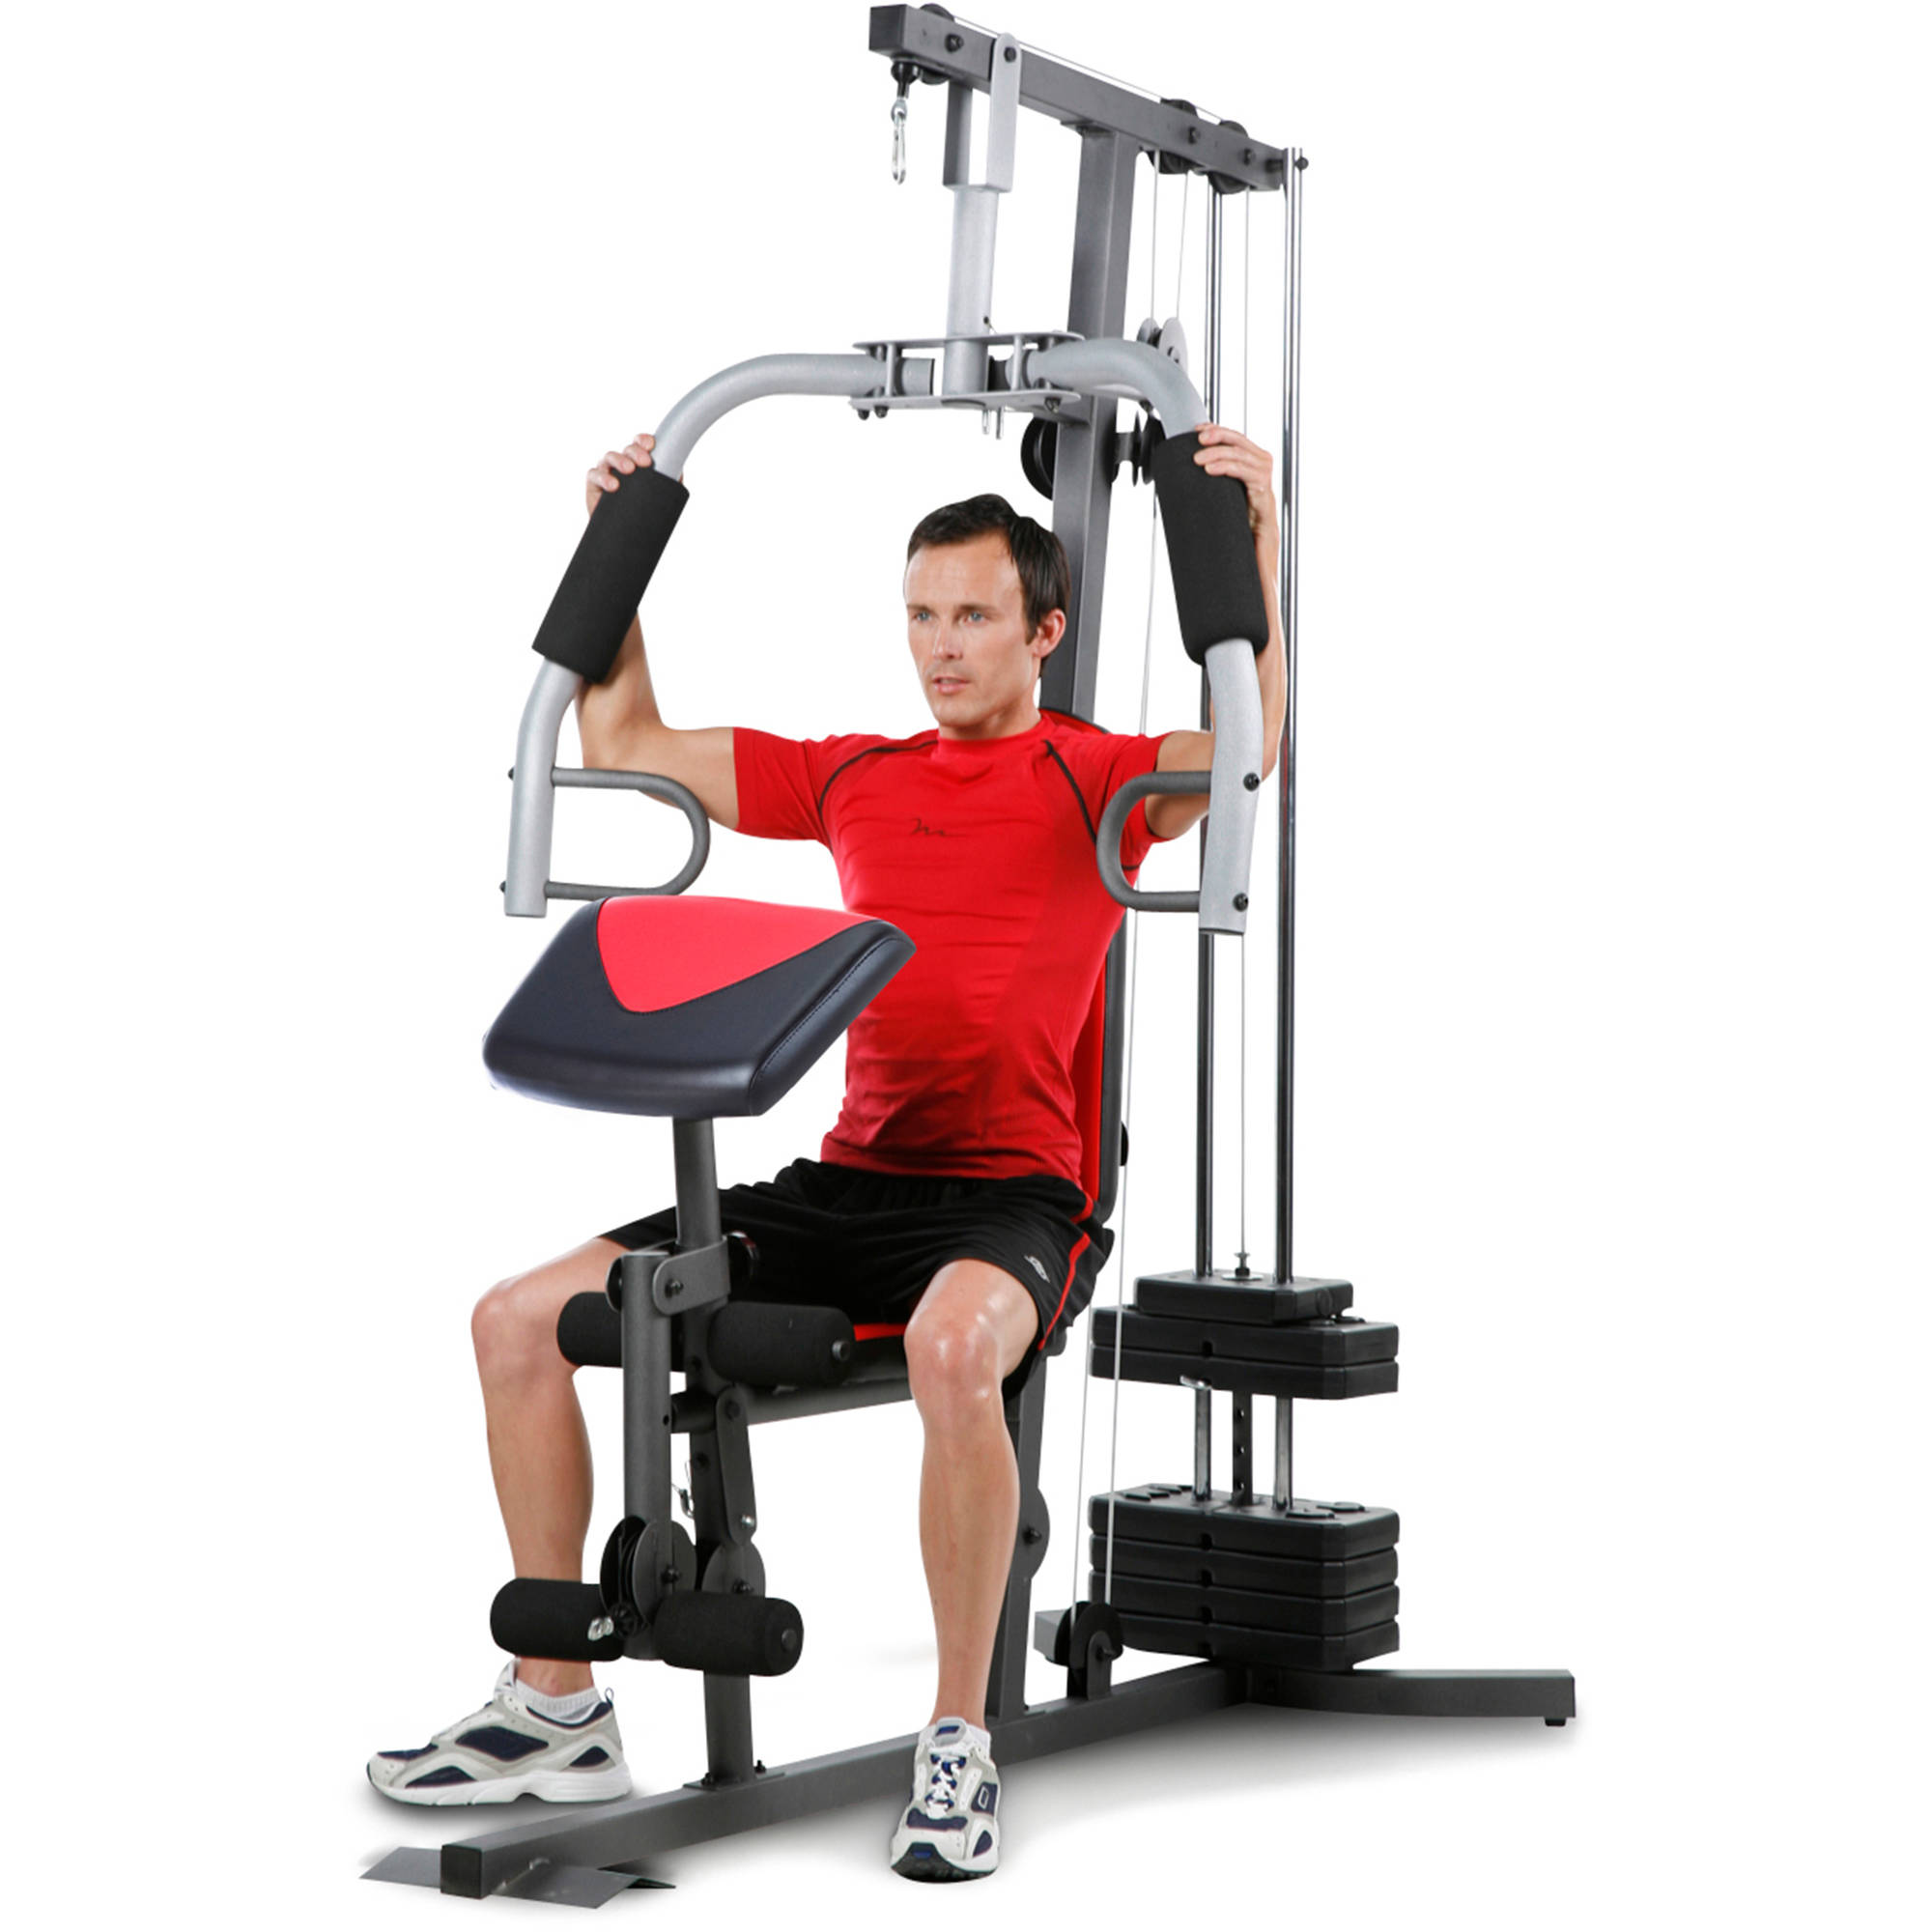 Weider 2980 X Weight System 214 Lb Stack Home Gym Core